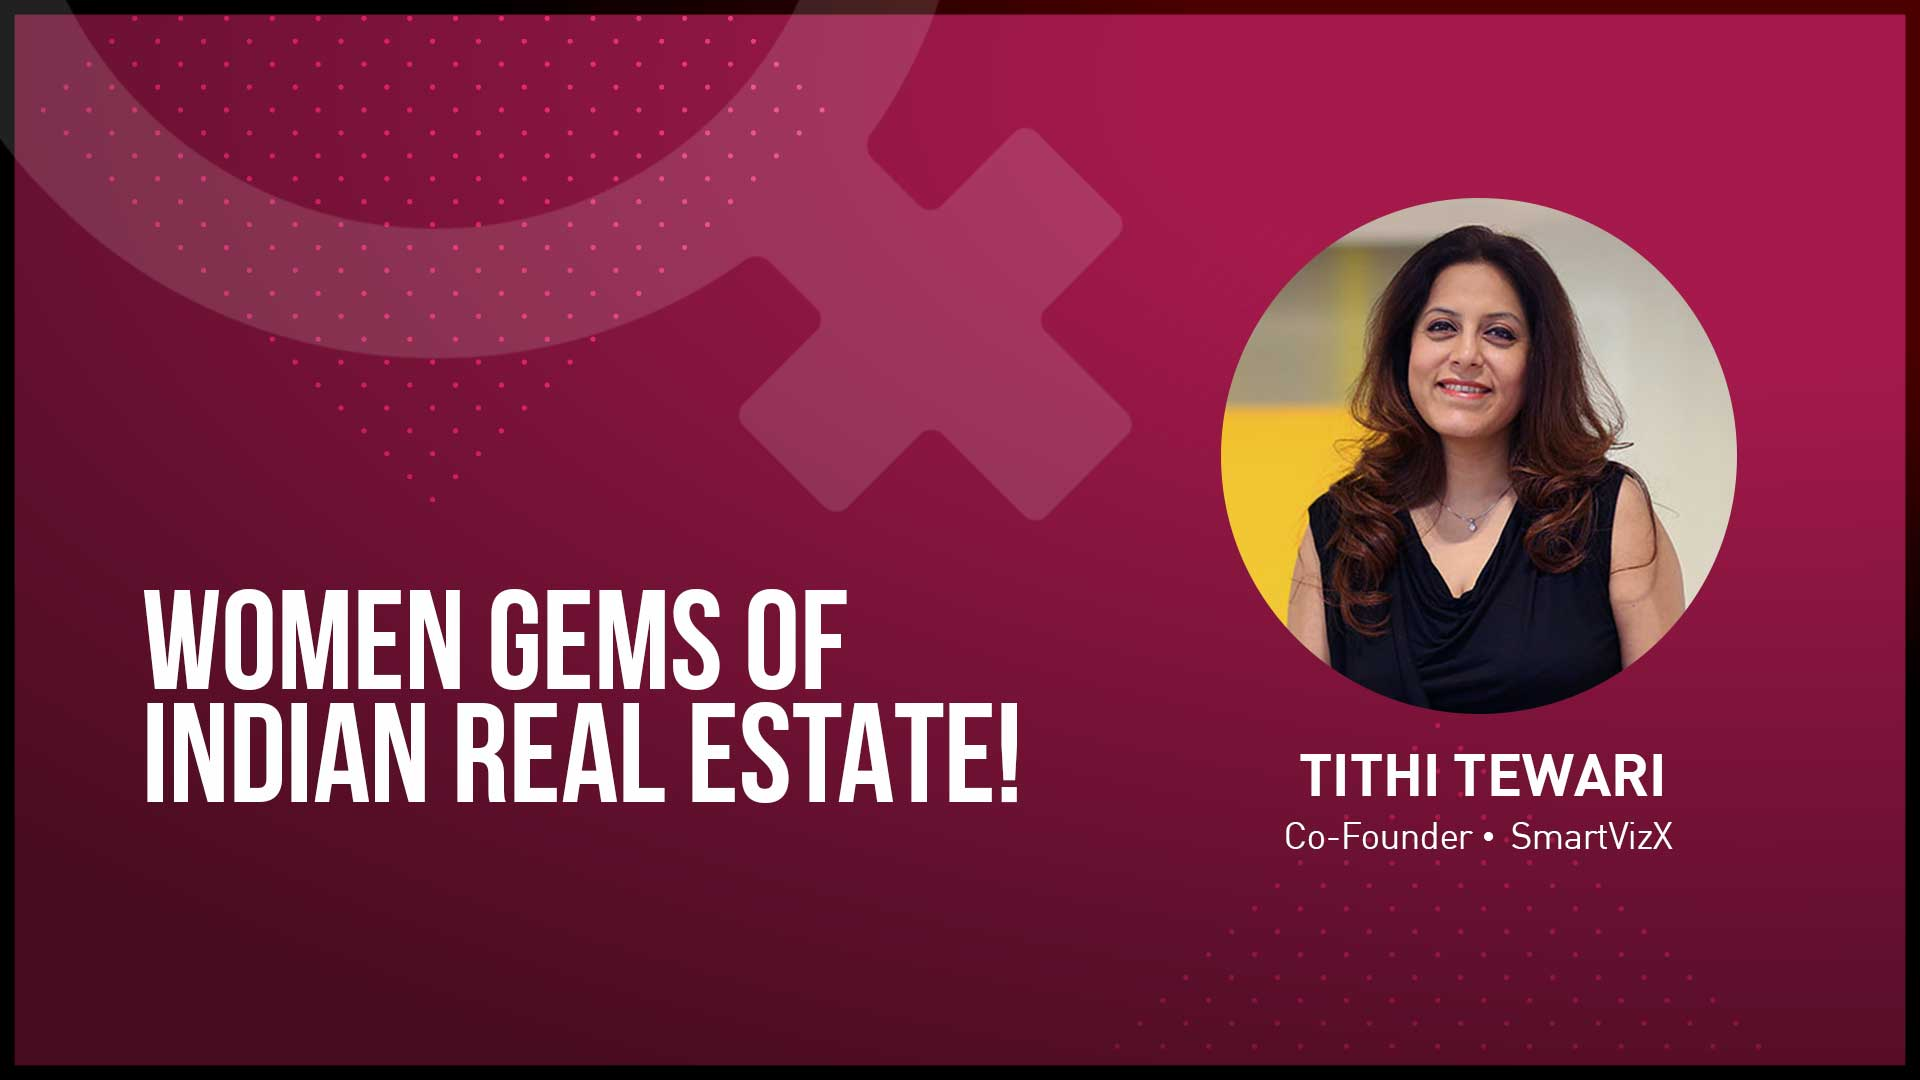 Women's Day Exclusive Interview With Tithi Tewari Of SmartVizX